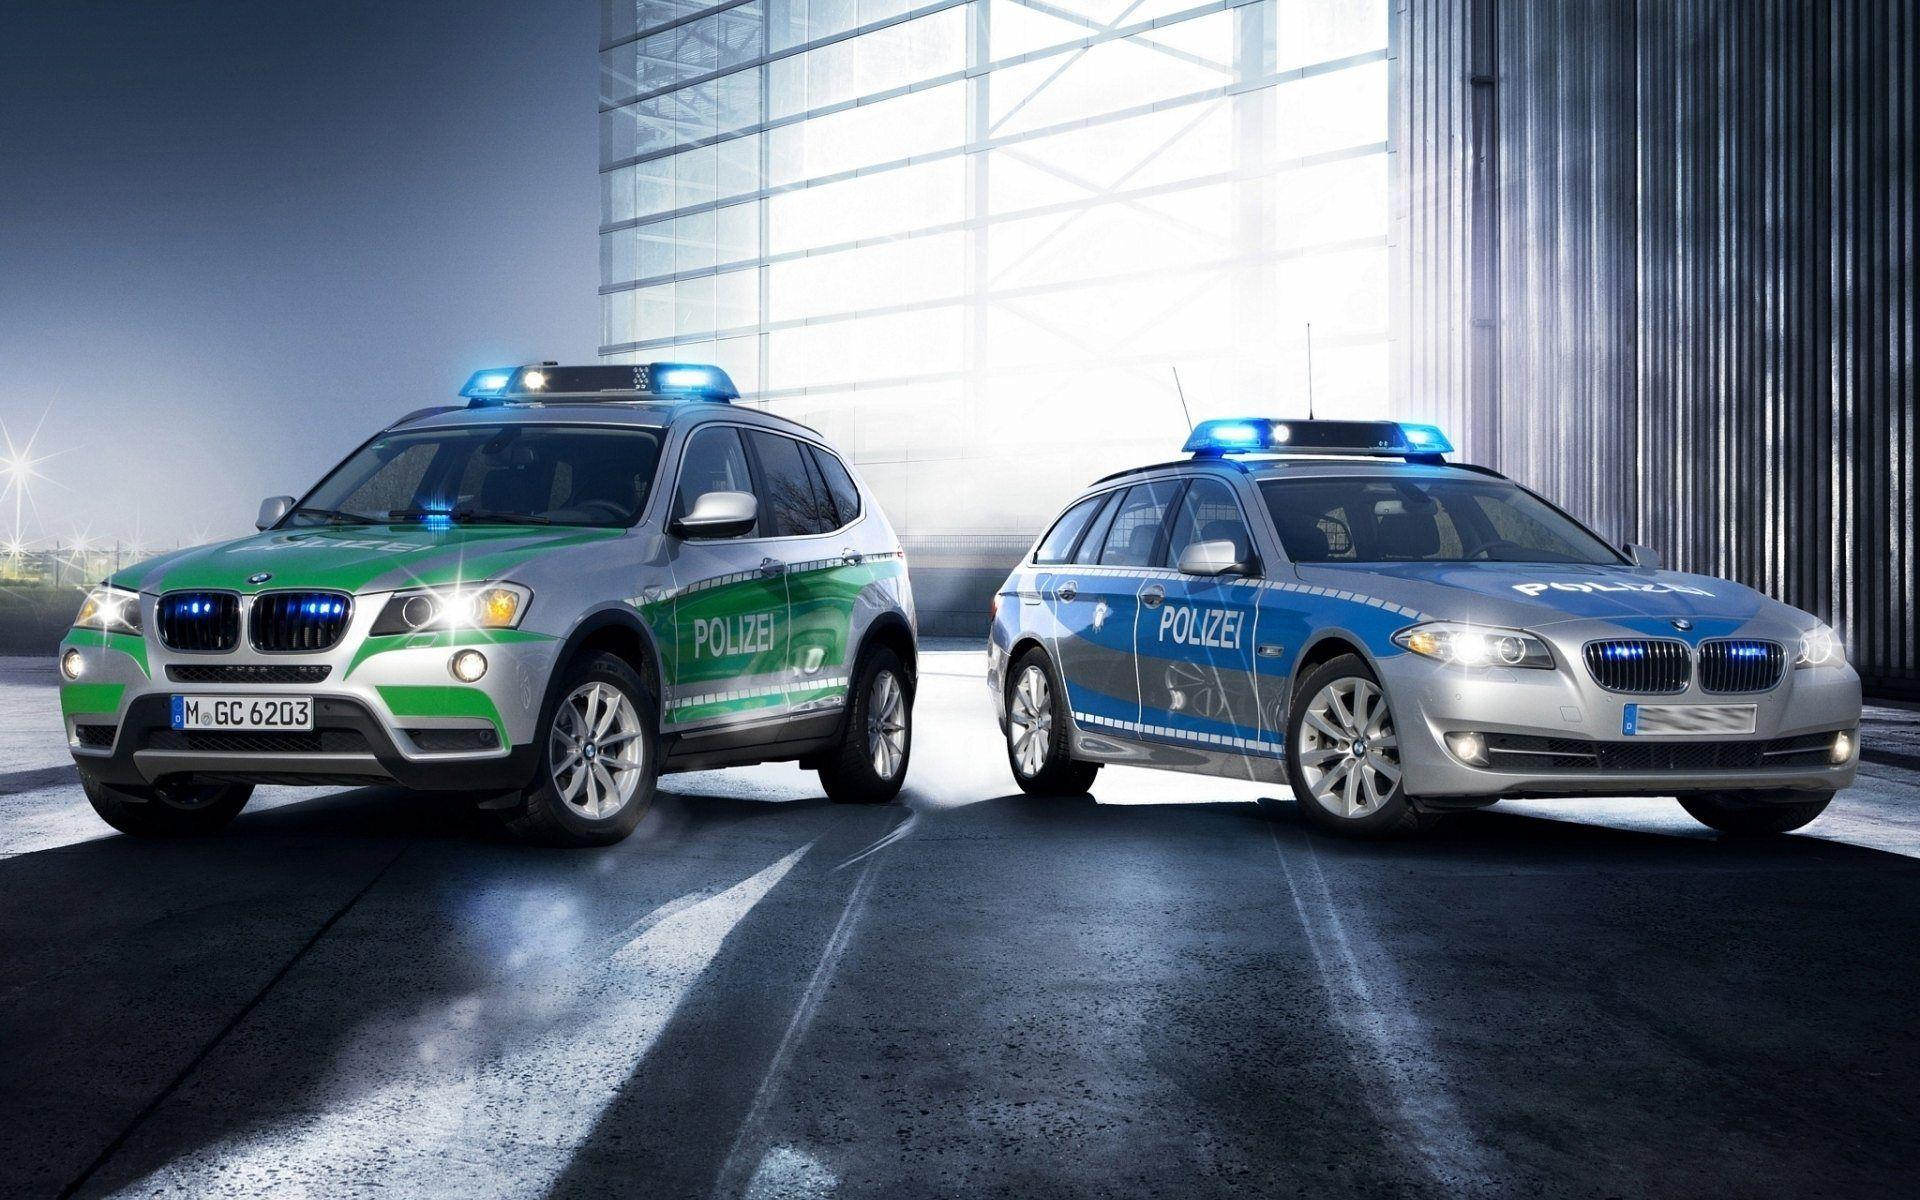 Police Car Wallpapers 1920x1200